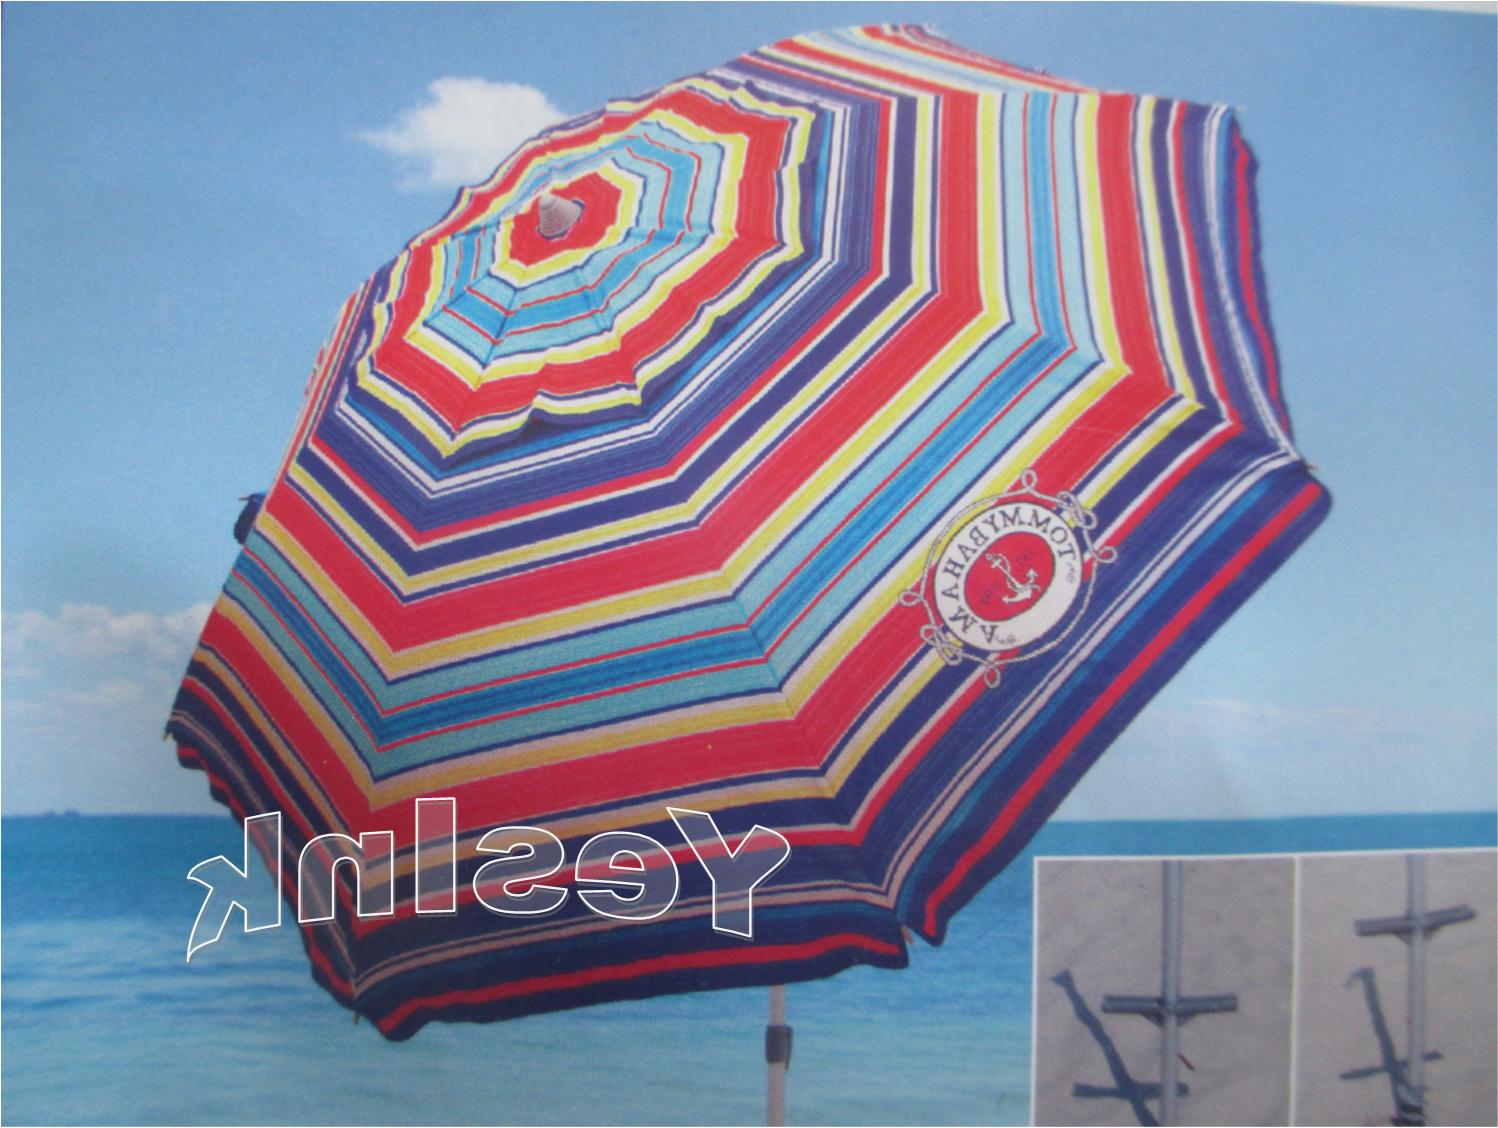 TOMMY Bahama Umbrella w/ Tilt MULTI-COLOR OR FAST SHIPPING!